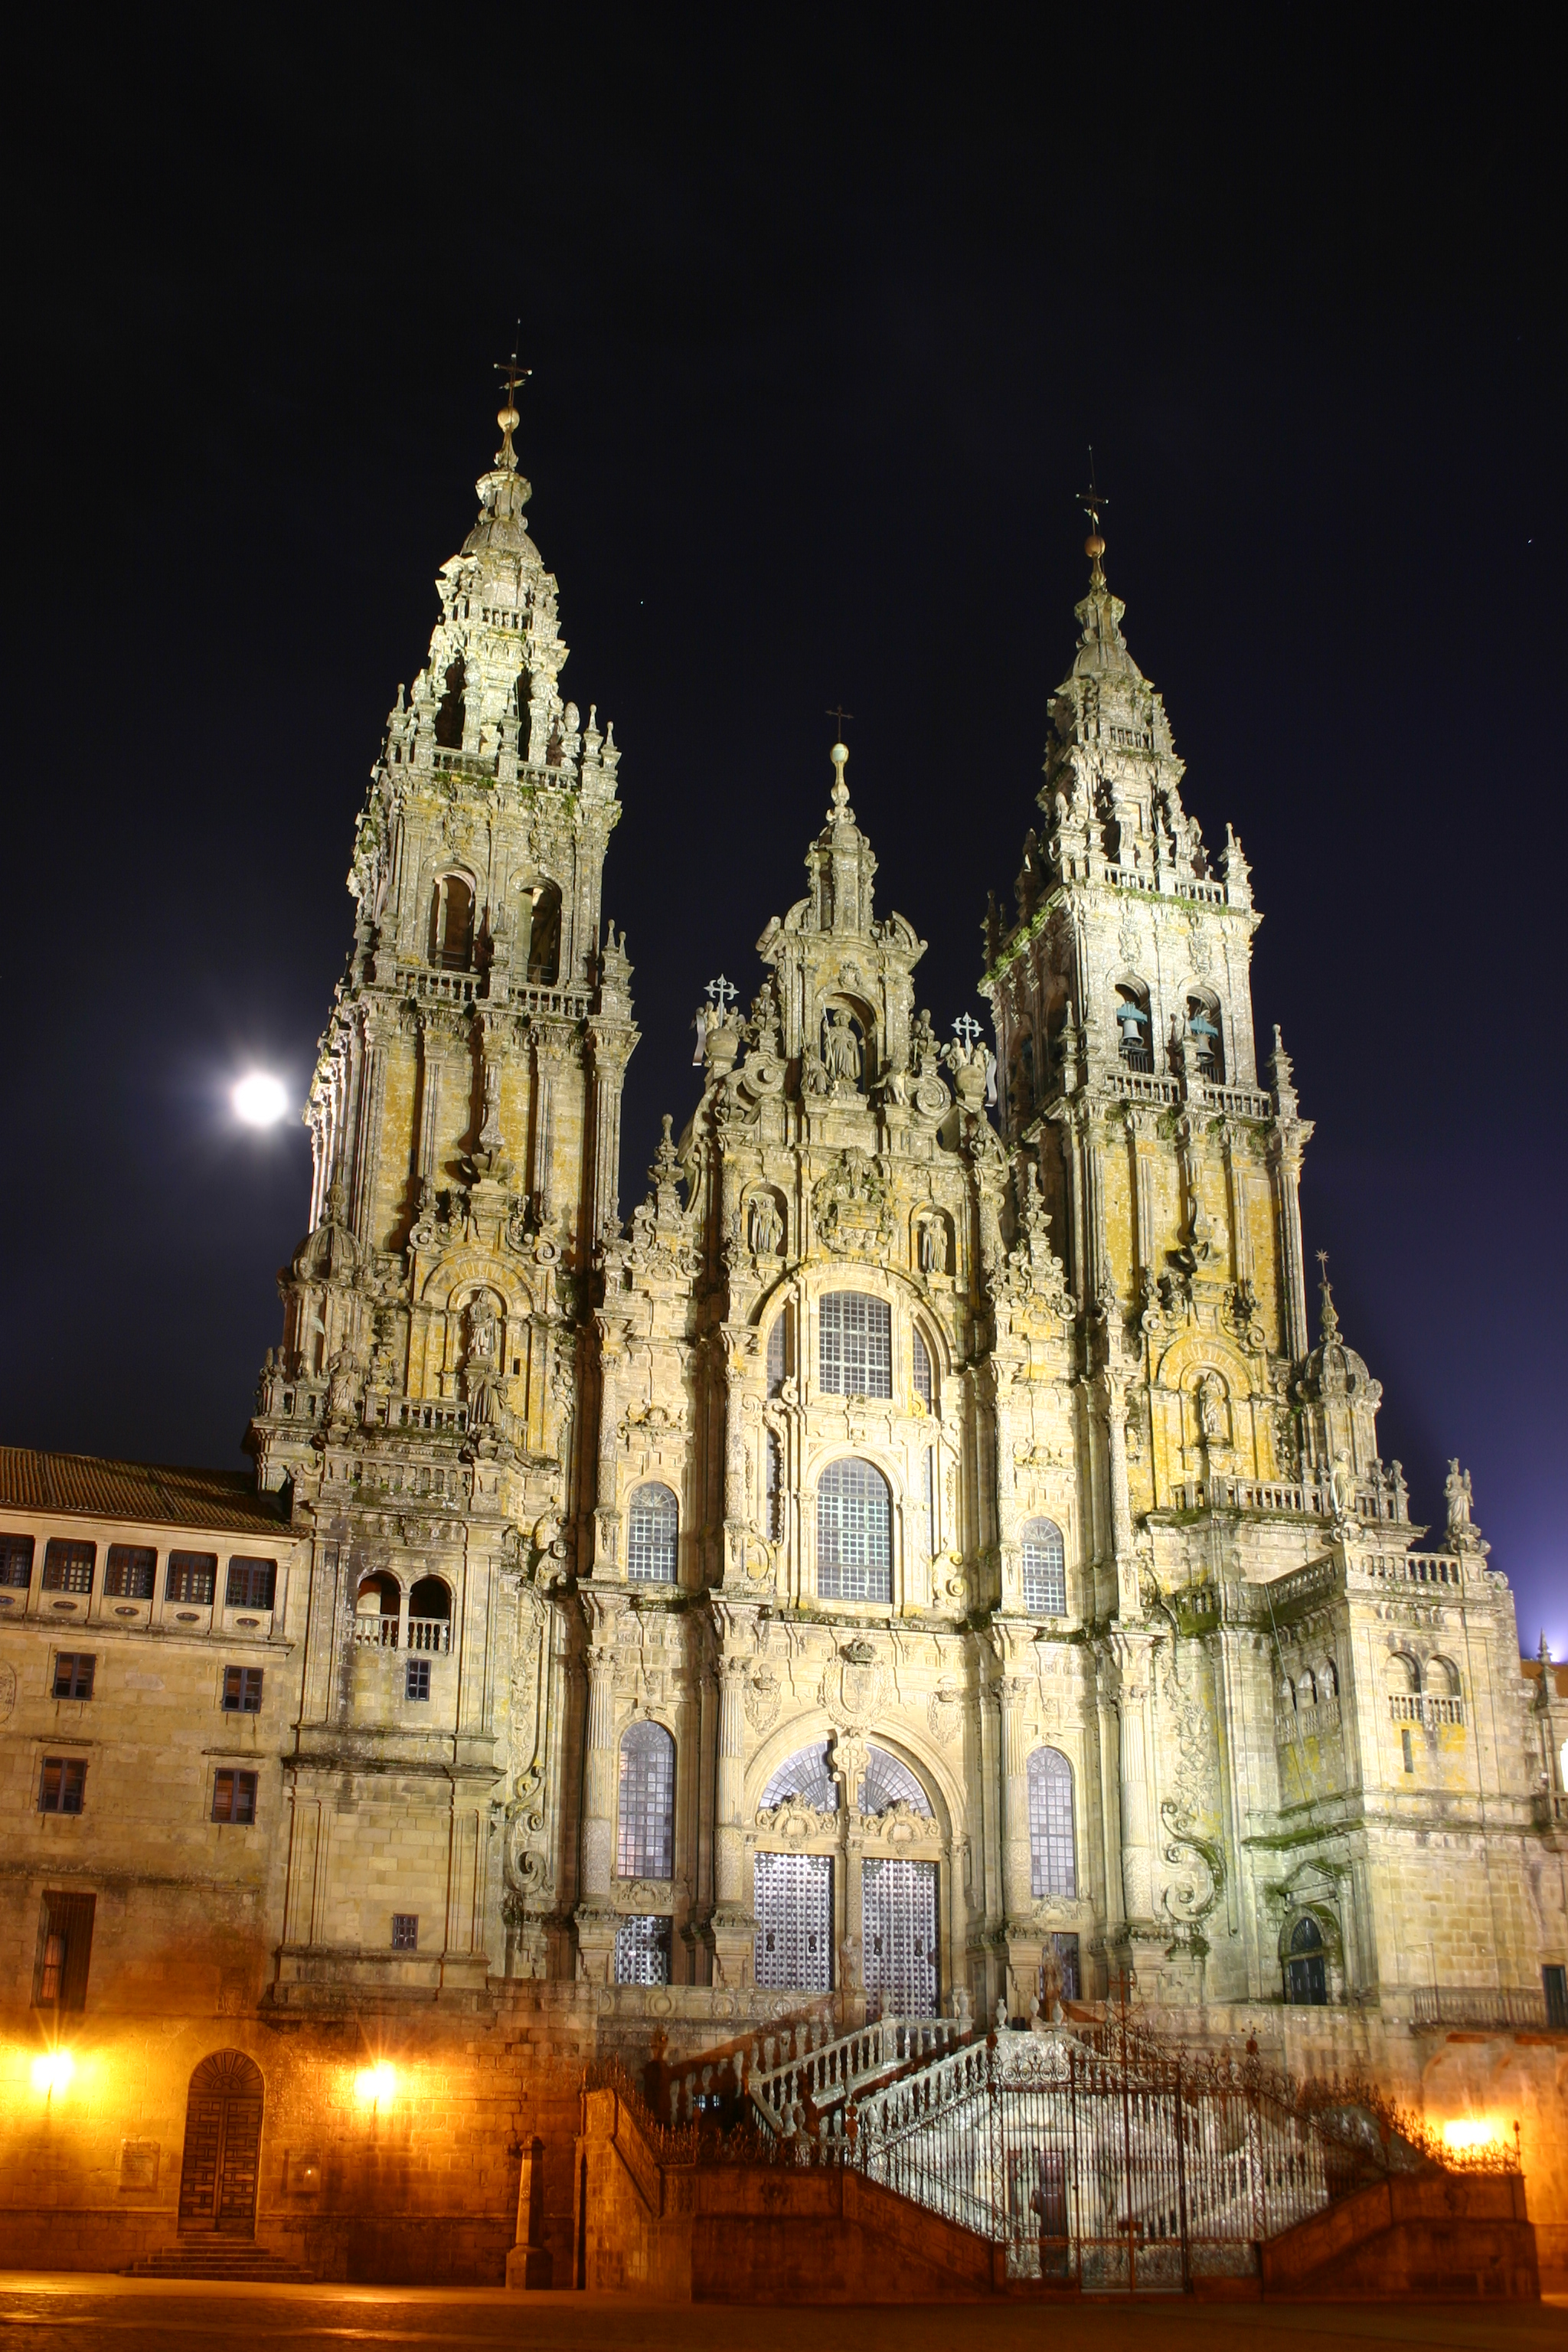 http://upload.wikimedia.org/wikipedia/commons/7/7d/Santiago.de.Compostela.Catedral.Noche.jpg